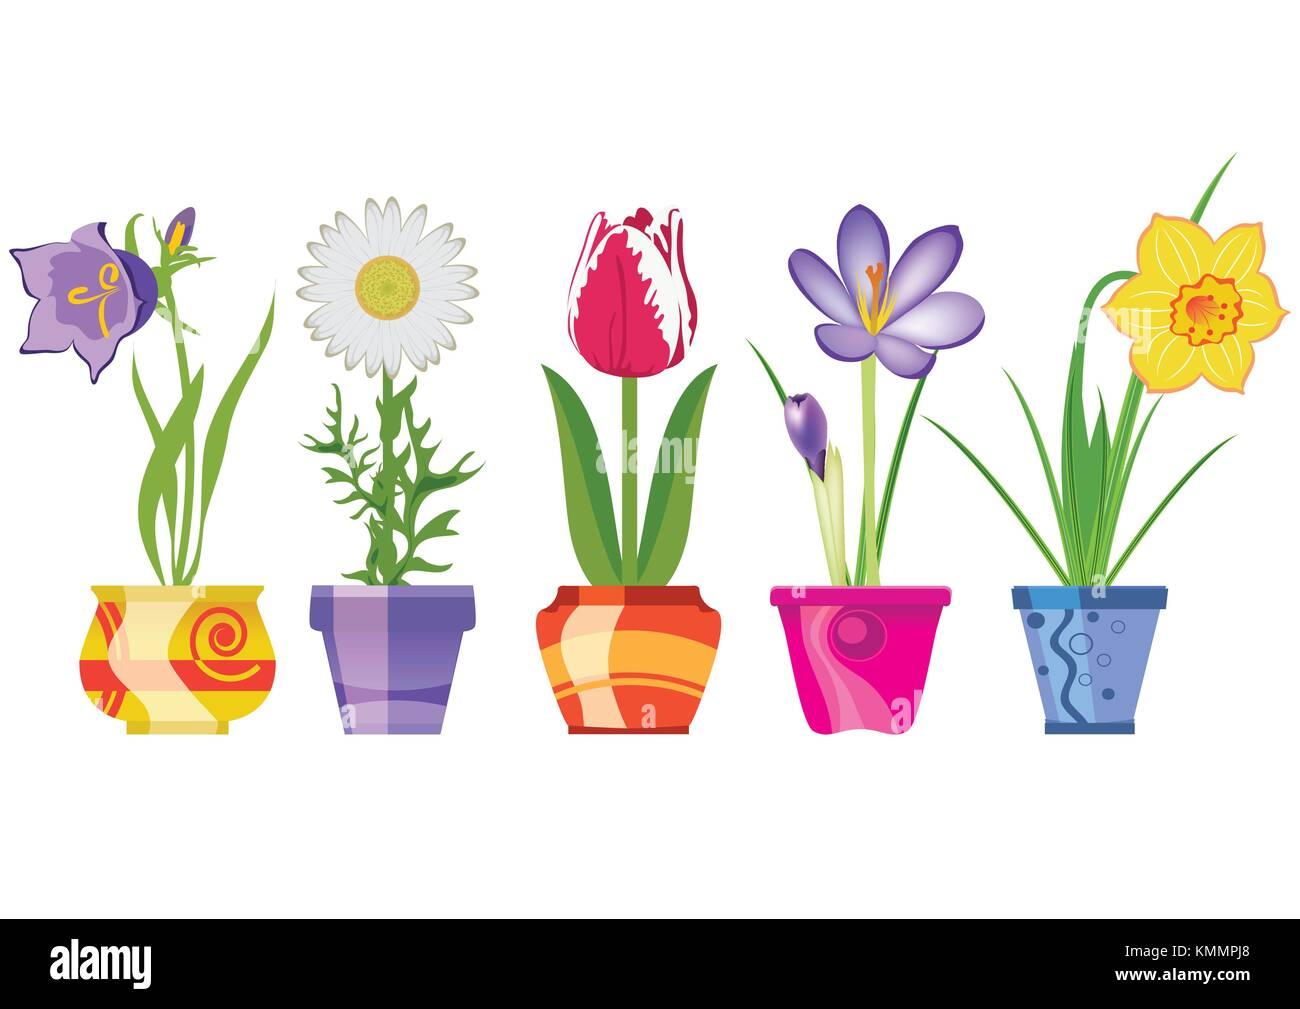 Spring Flowers In Pots Isolated On White Background Vector Stock Vector Image Art Alamy